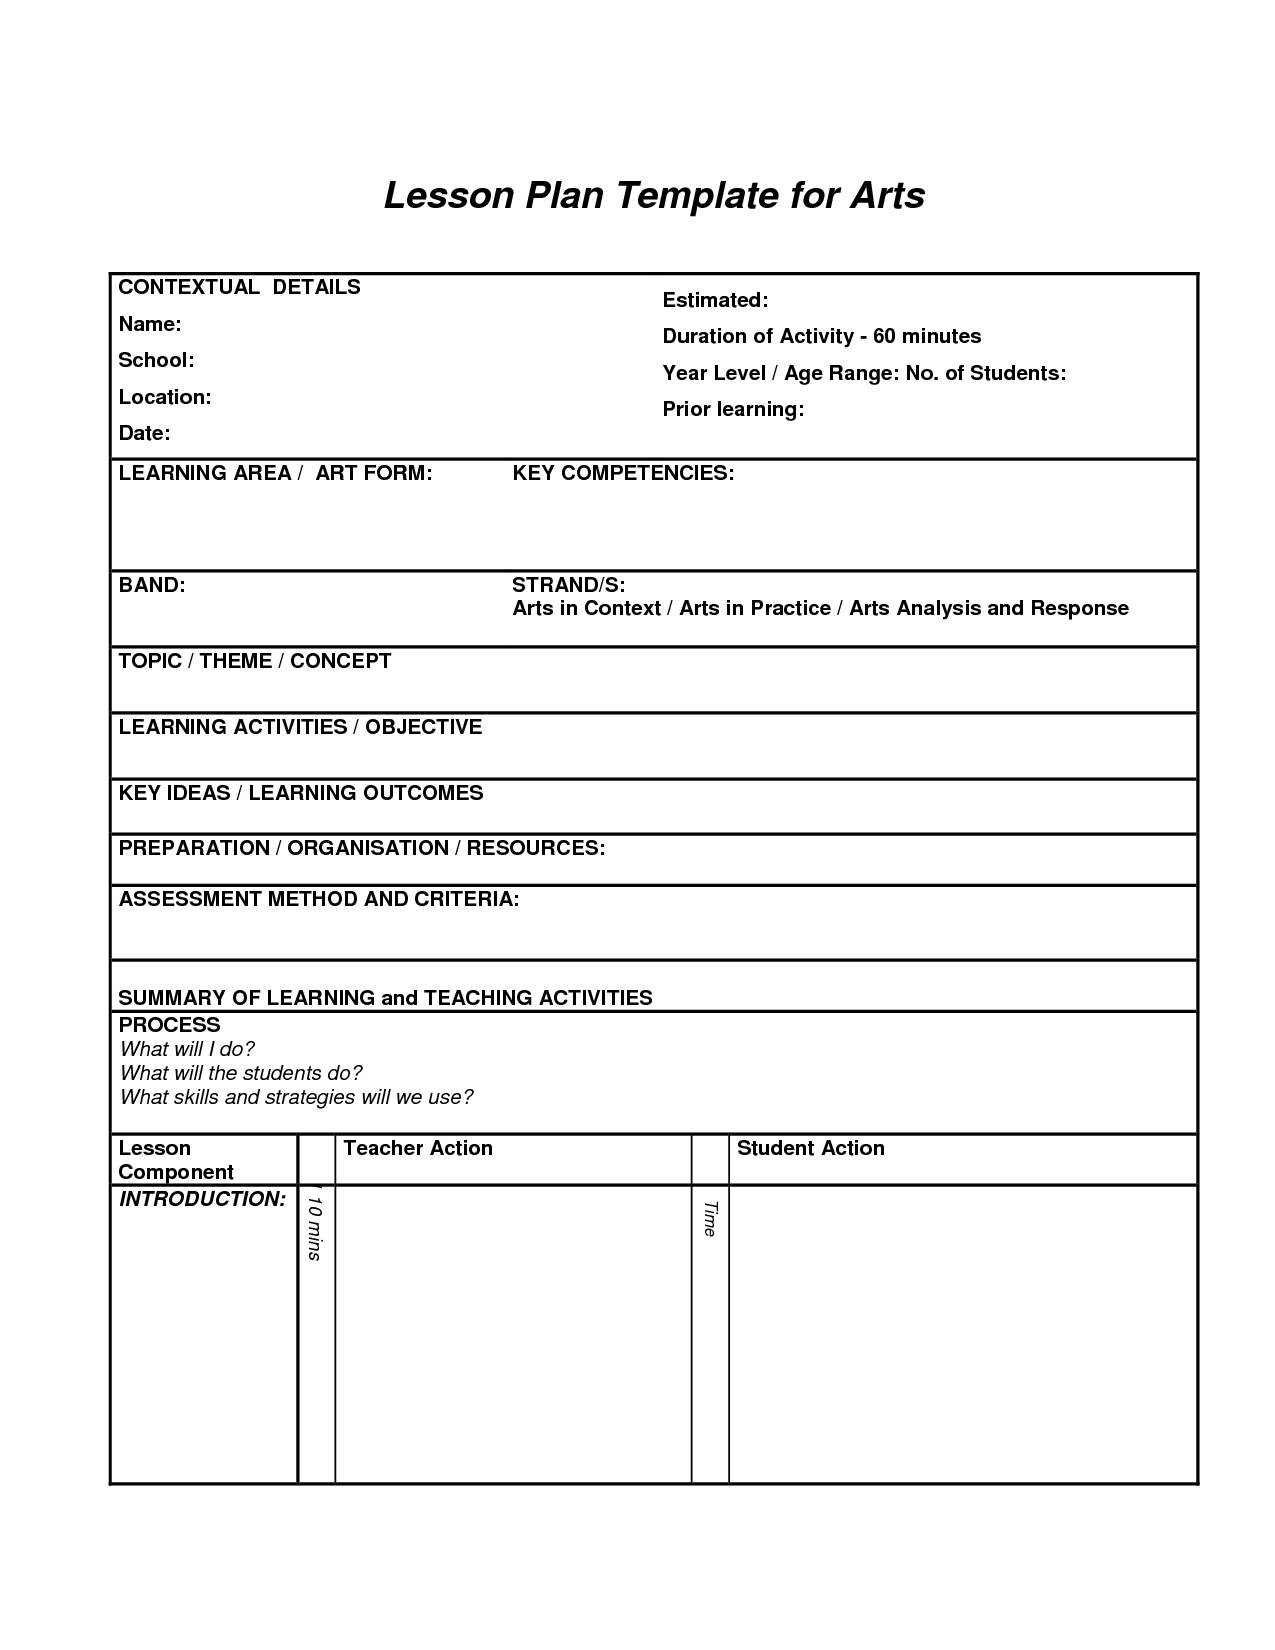 Lesson Plan Template For Arts | ART EDUCATION ESSENTIALS